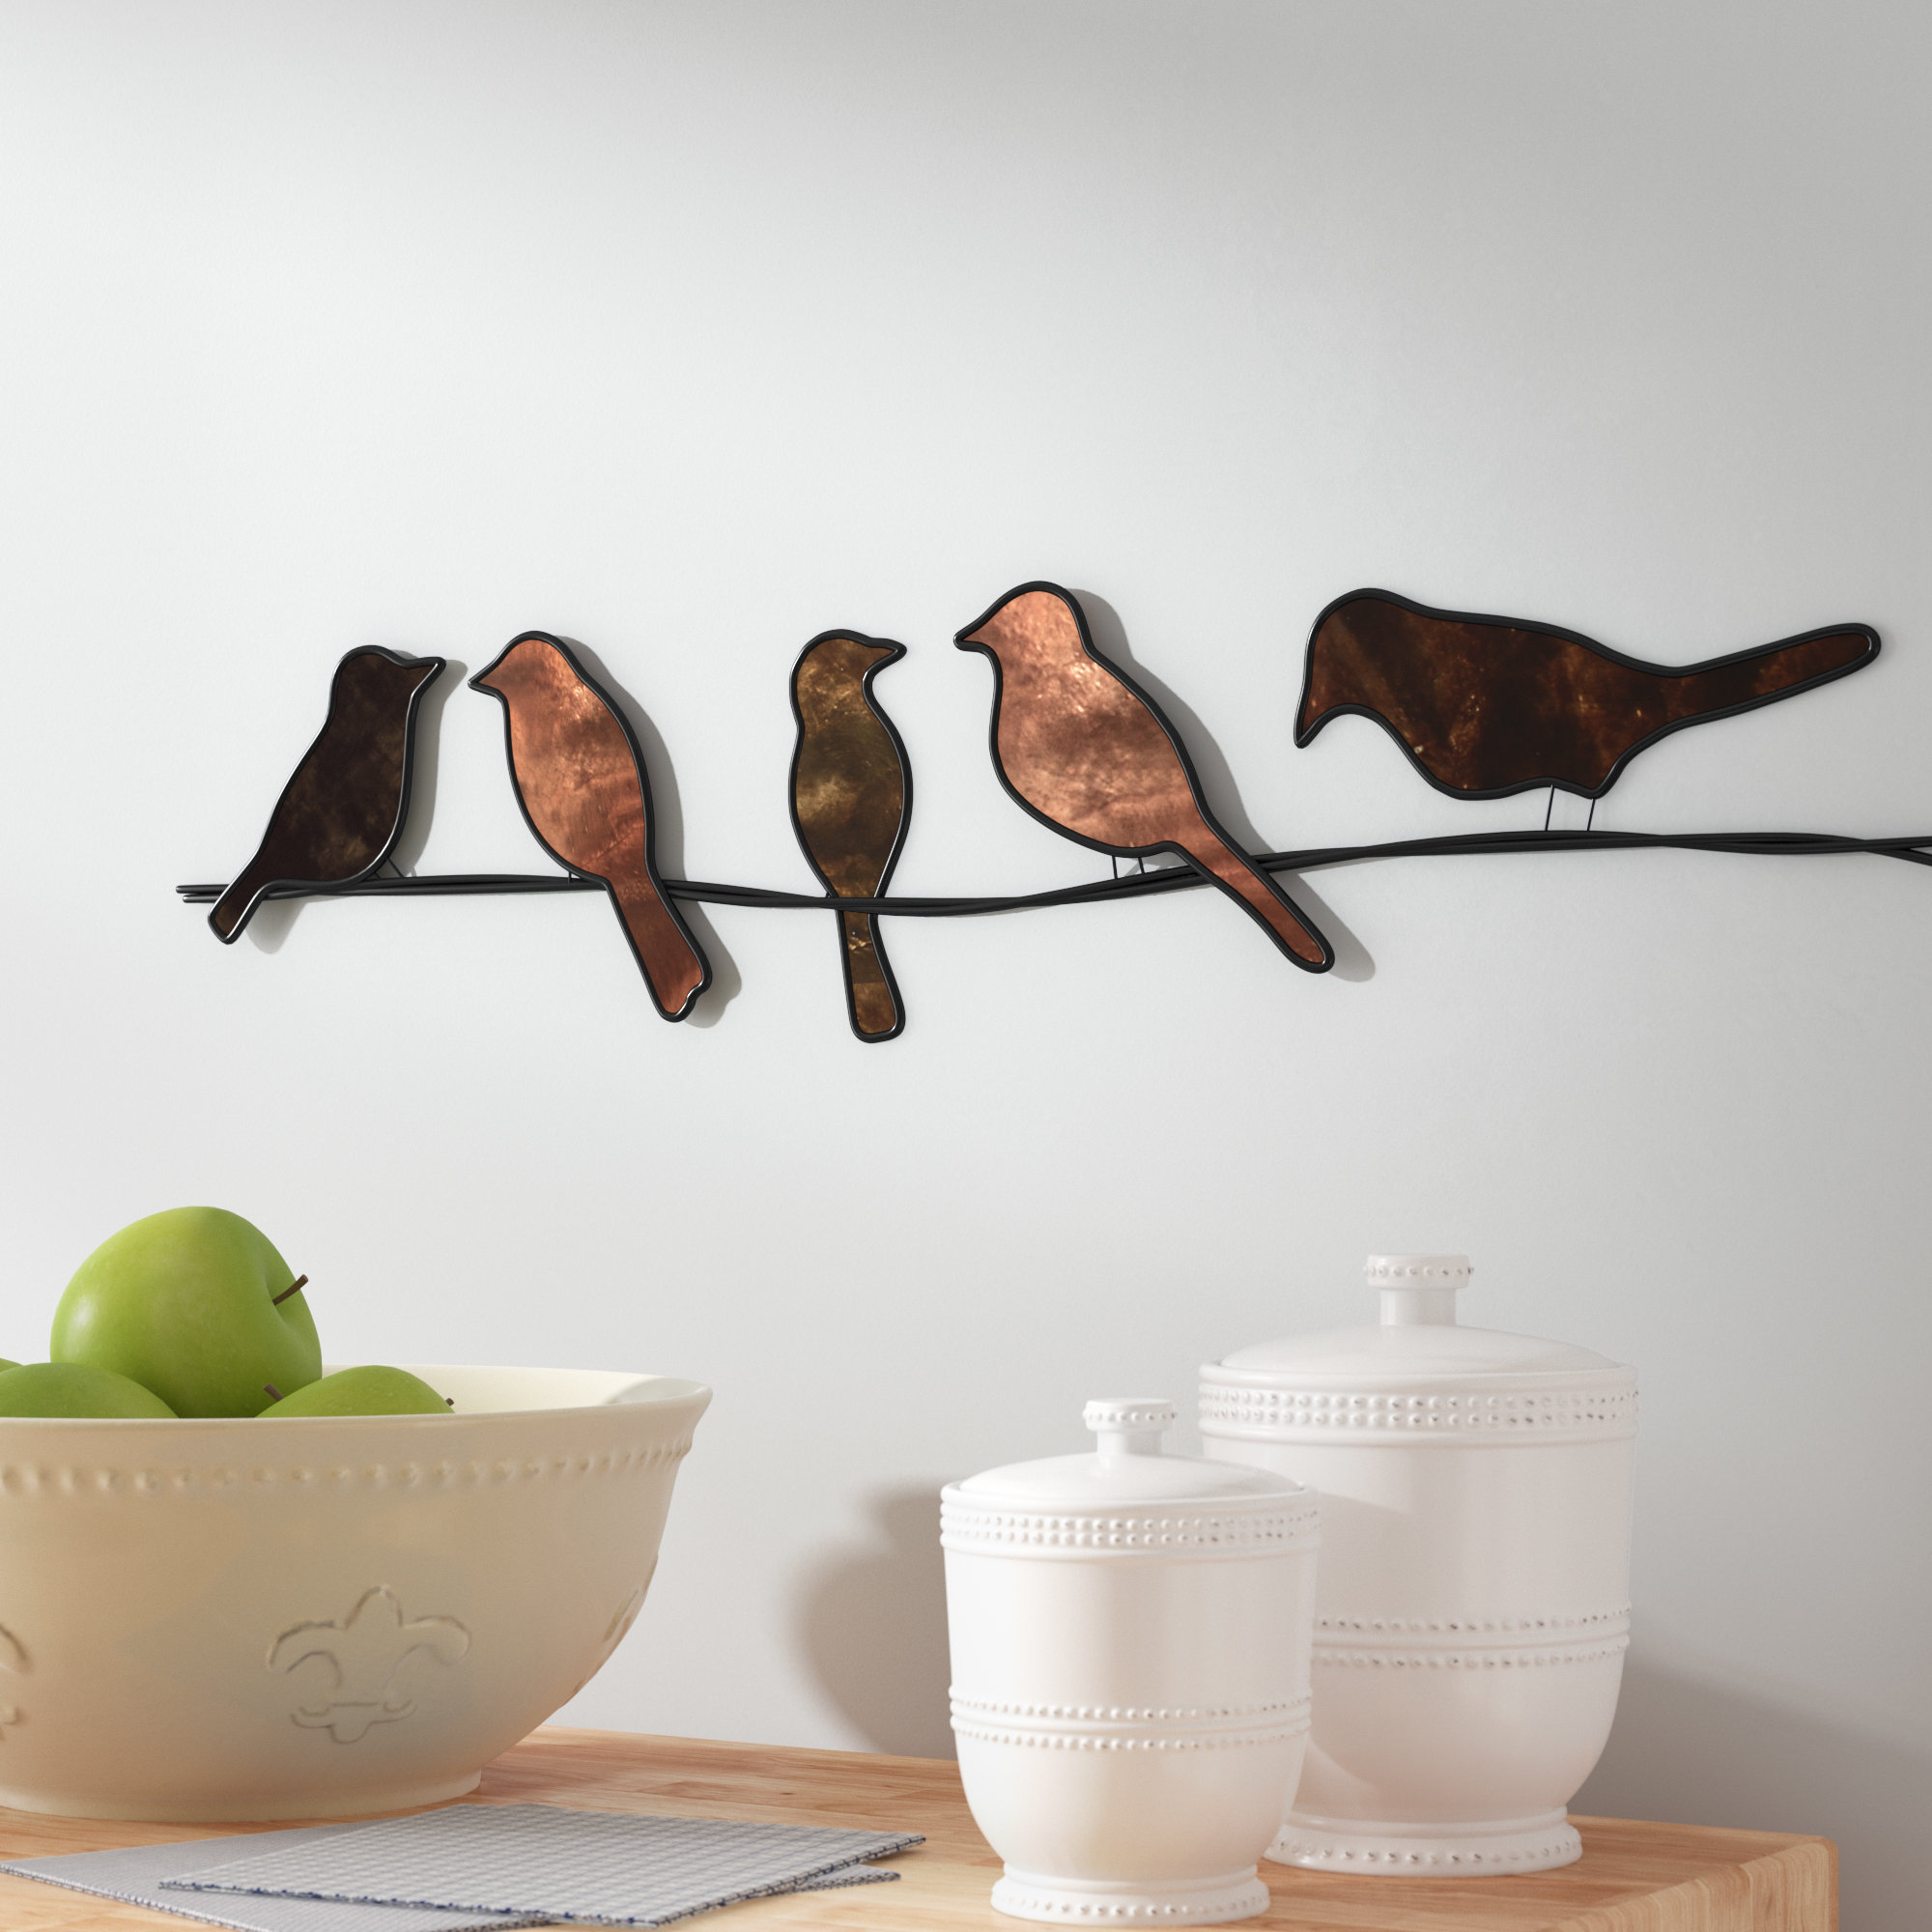 Wayfair Intended For Rioux Birds On A Wire Wall Decor (View 4 of 20)